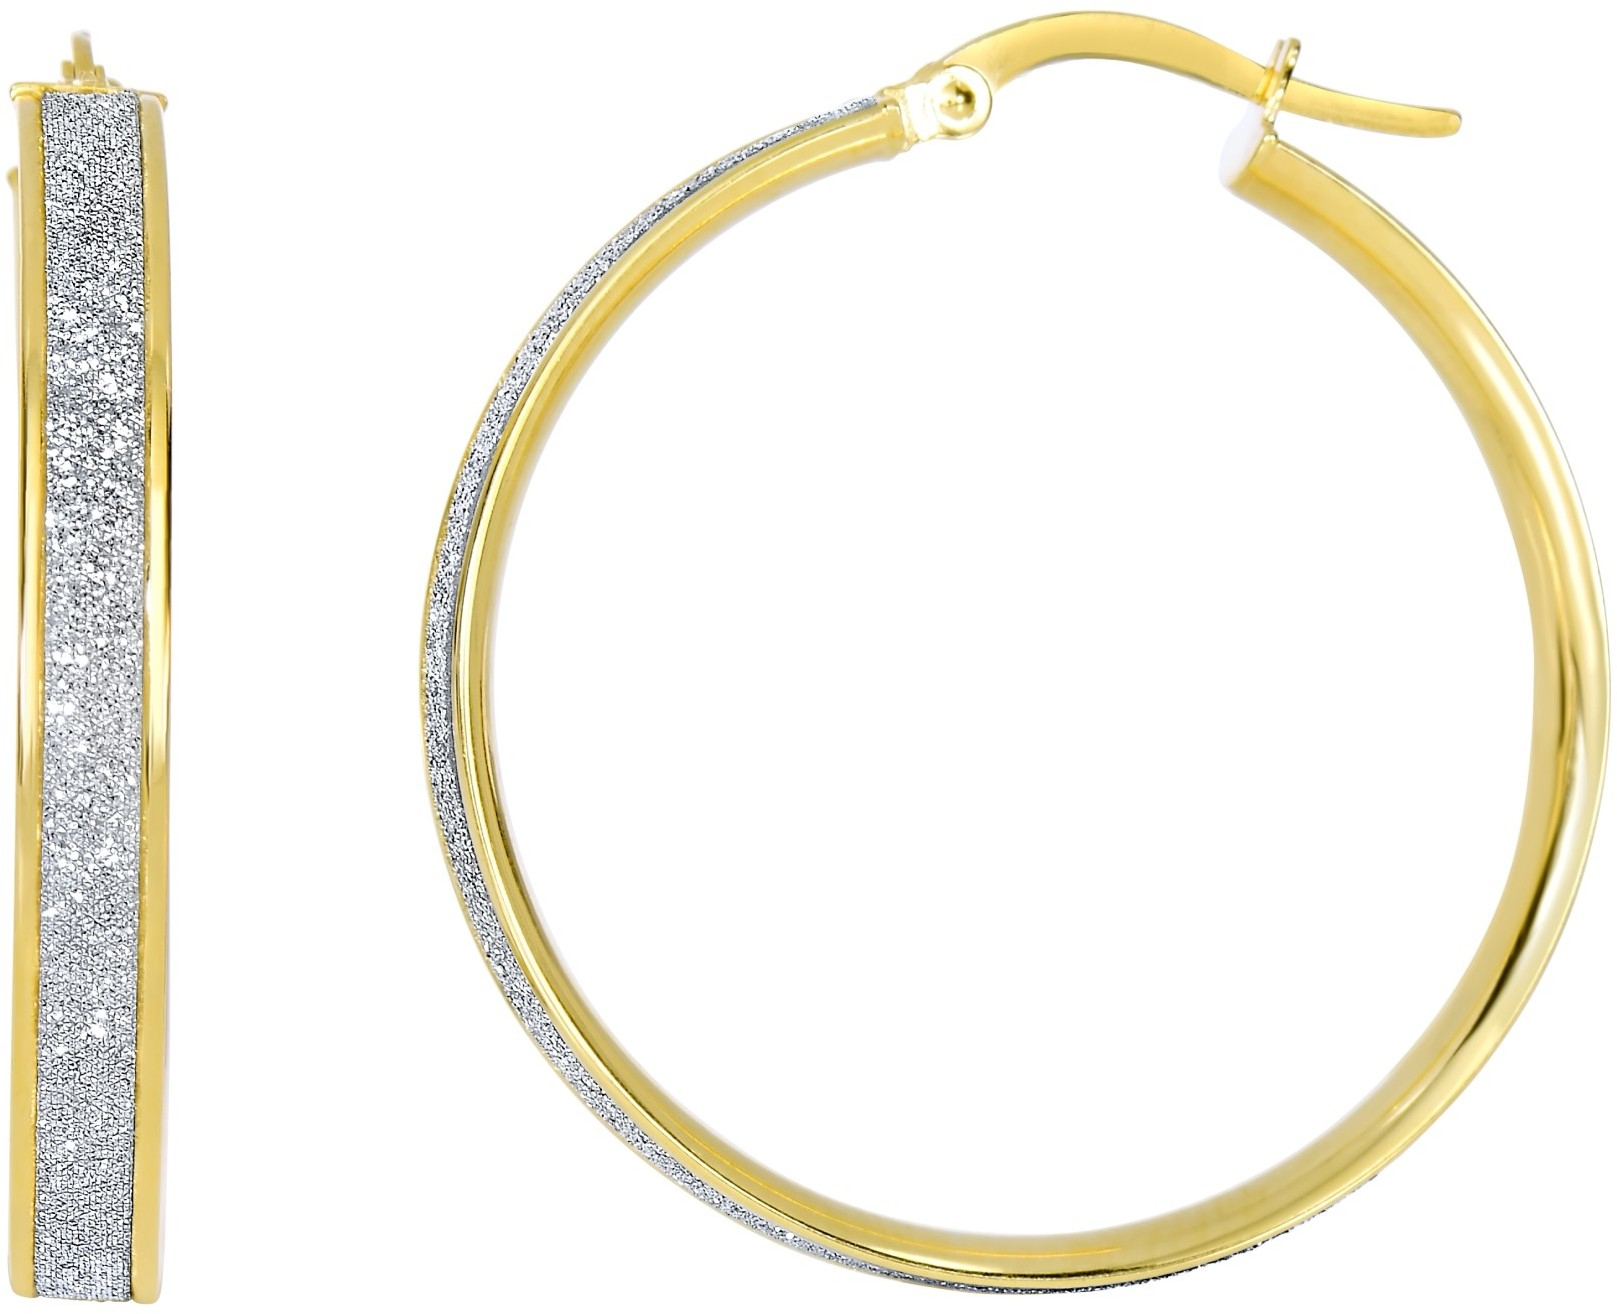 "14K Yellow Gold 3.75x28mm (0.15""x1.1"") Shiny Round Hoop Earrings"